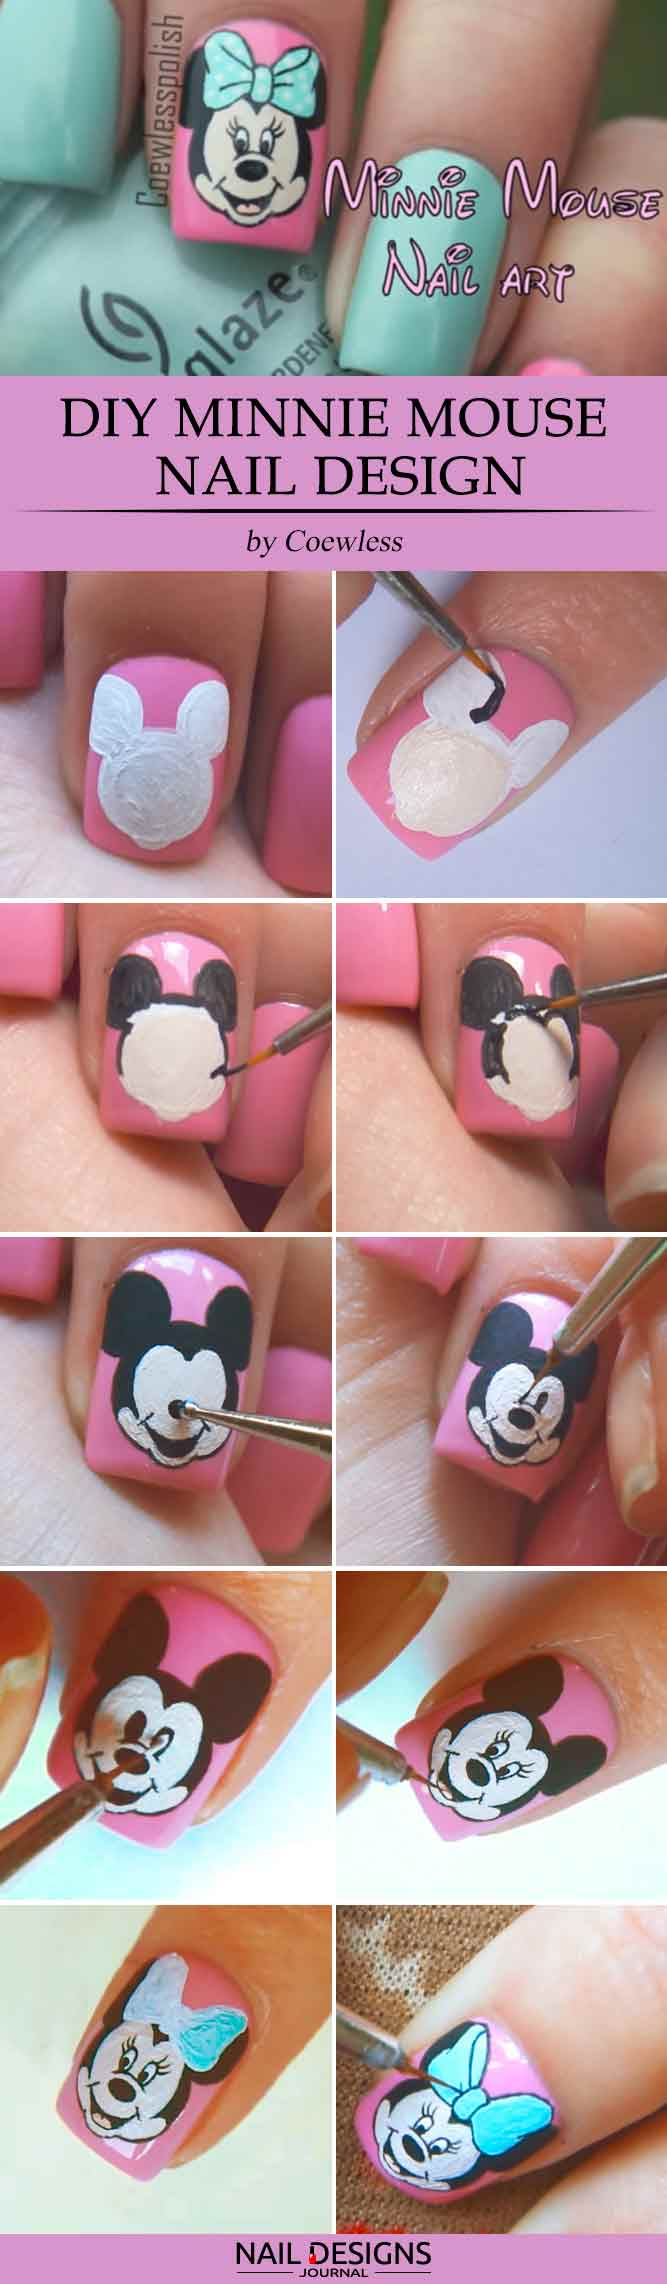 5 Lovely Mickey Mouse Nails Art Tutorials Youll Want To Try